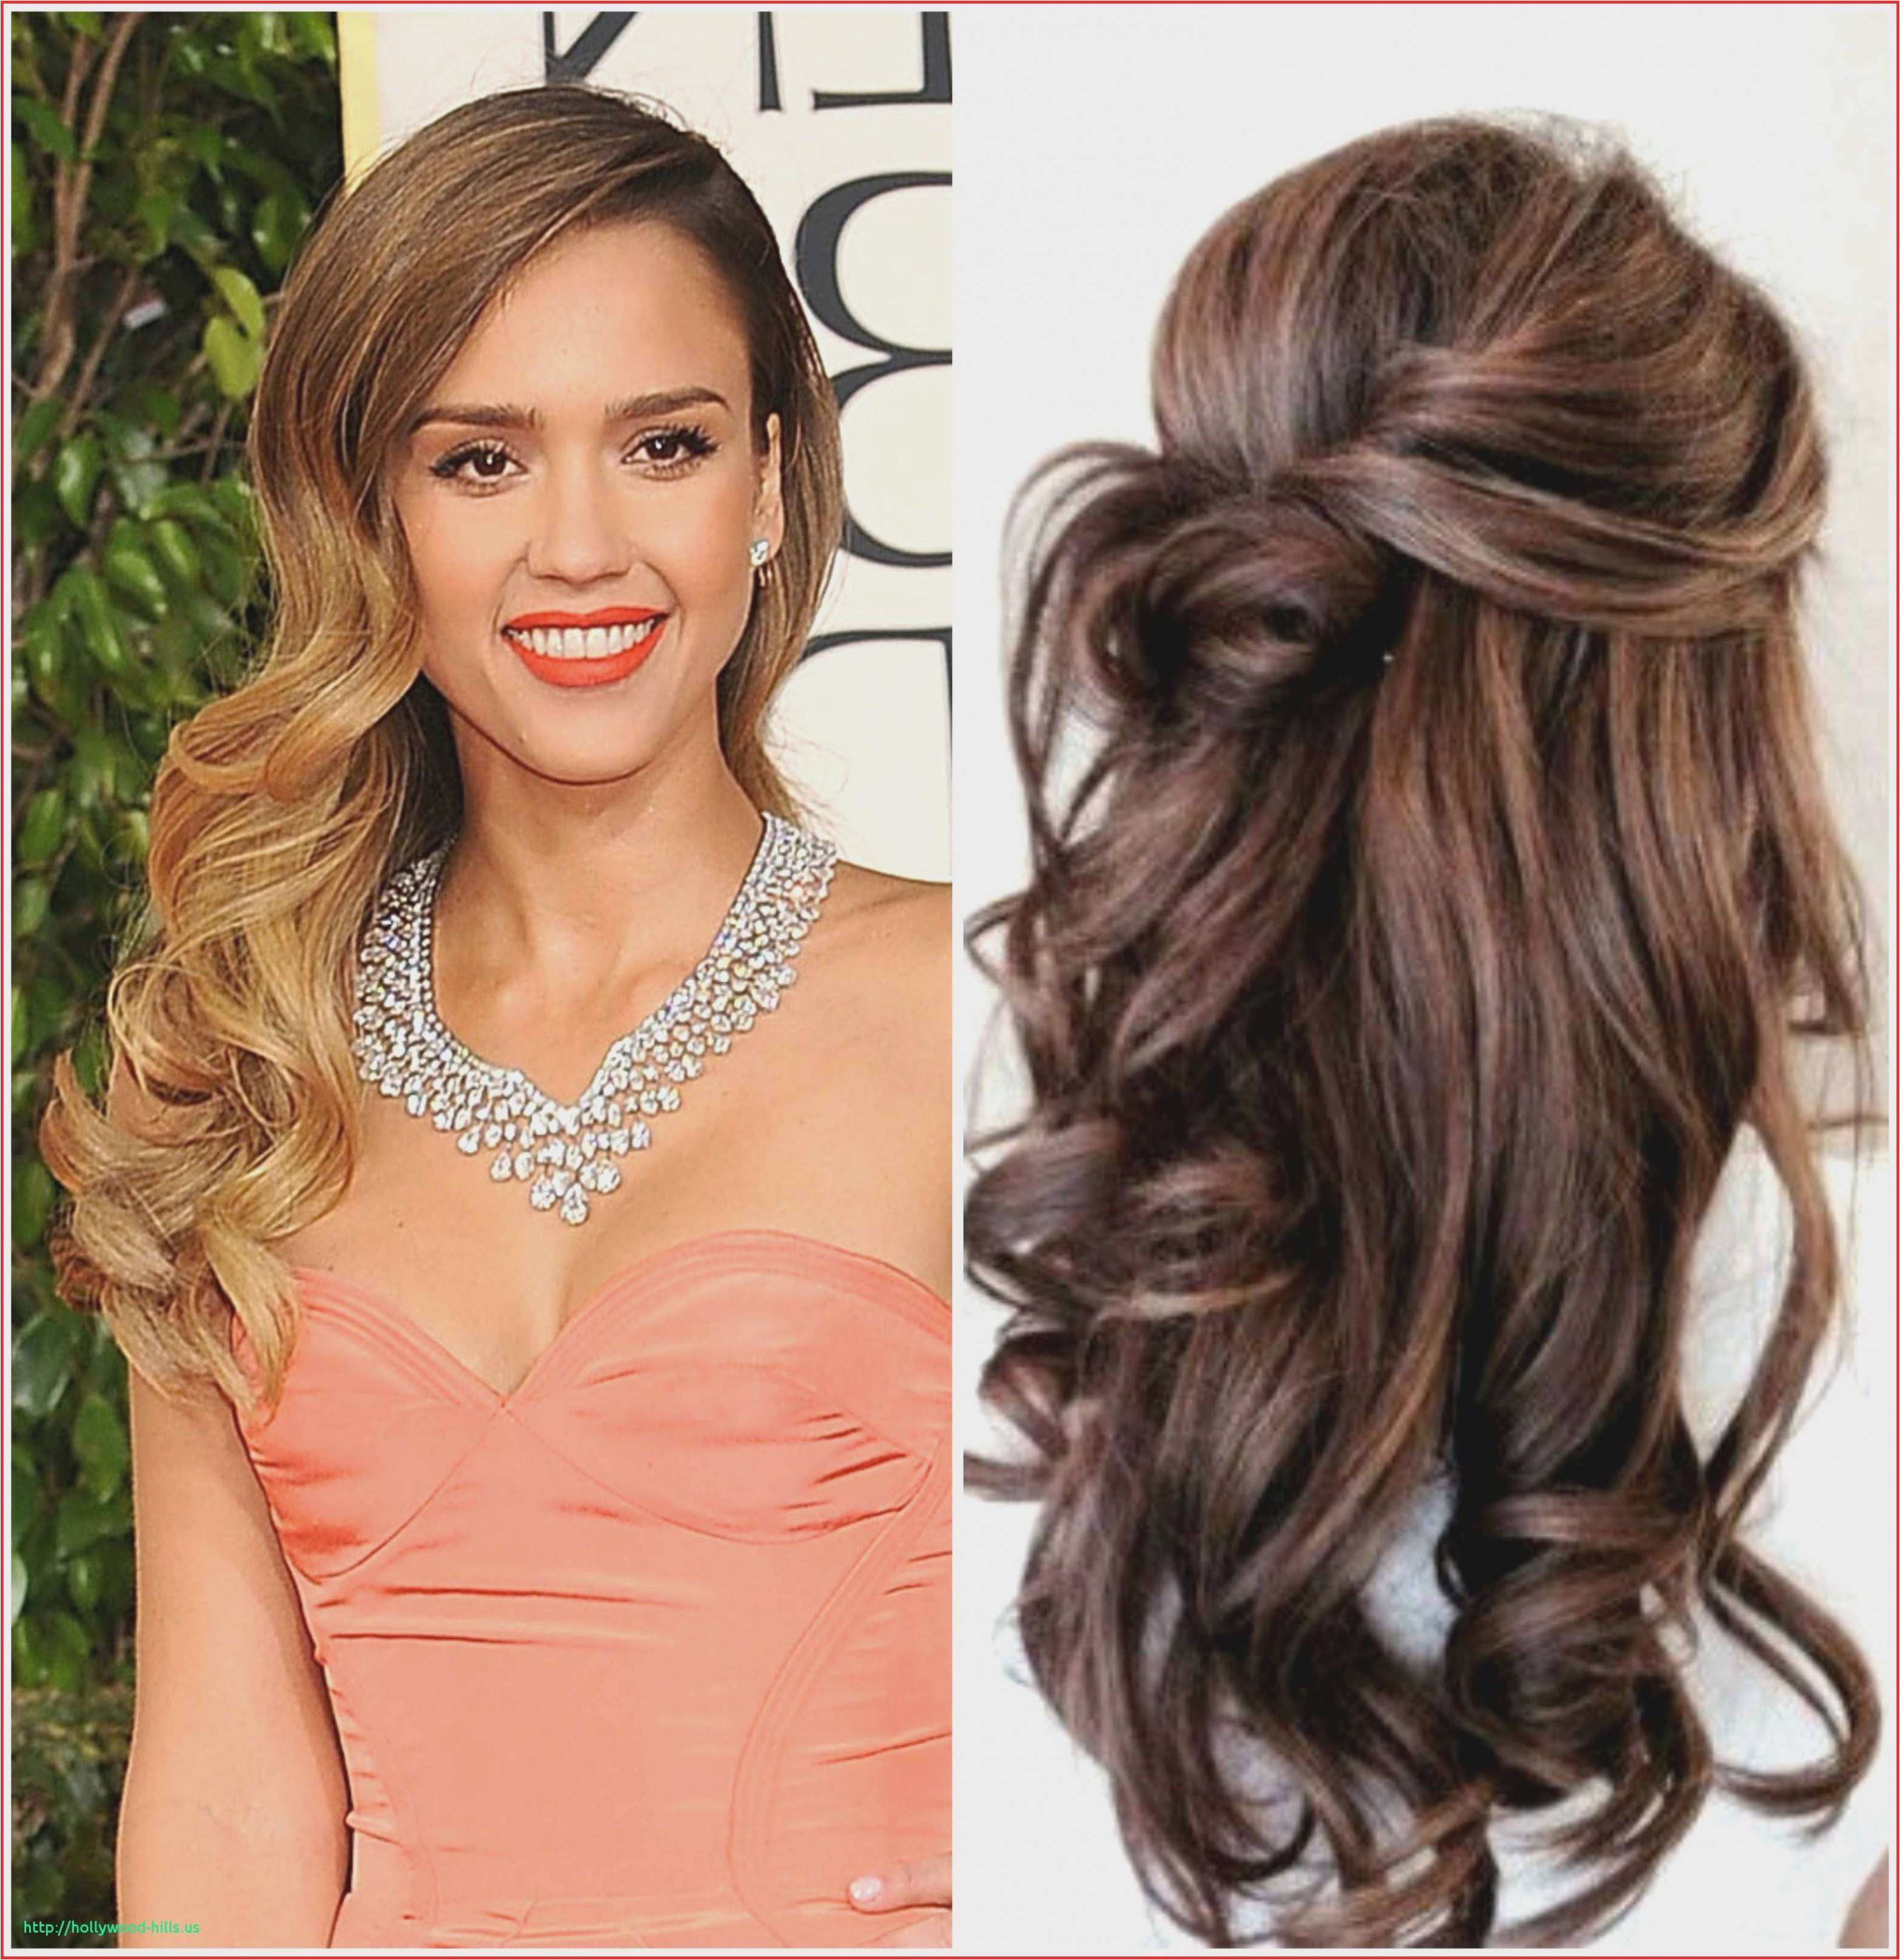 Cool Hairstyles for Girls with Medium Hair Fresh Fresh Simple Hairstyles for Girls with Medium Hair